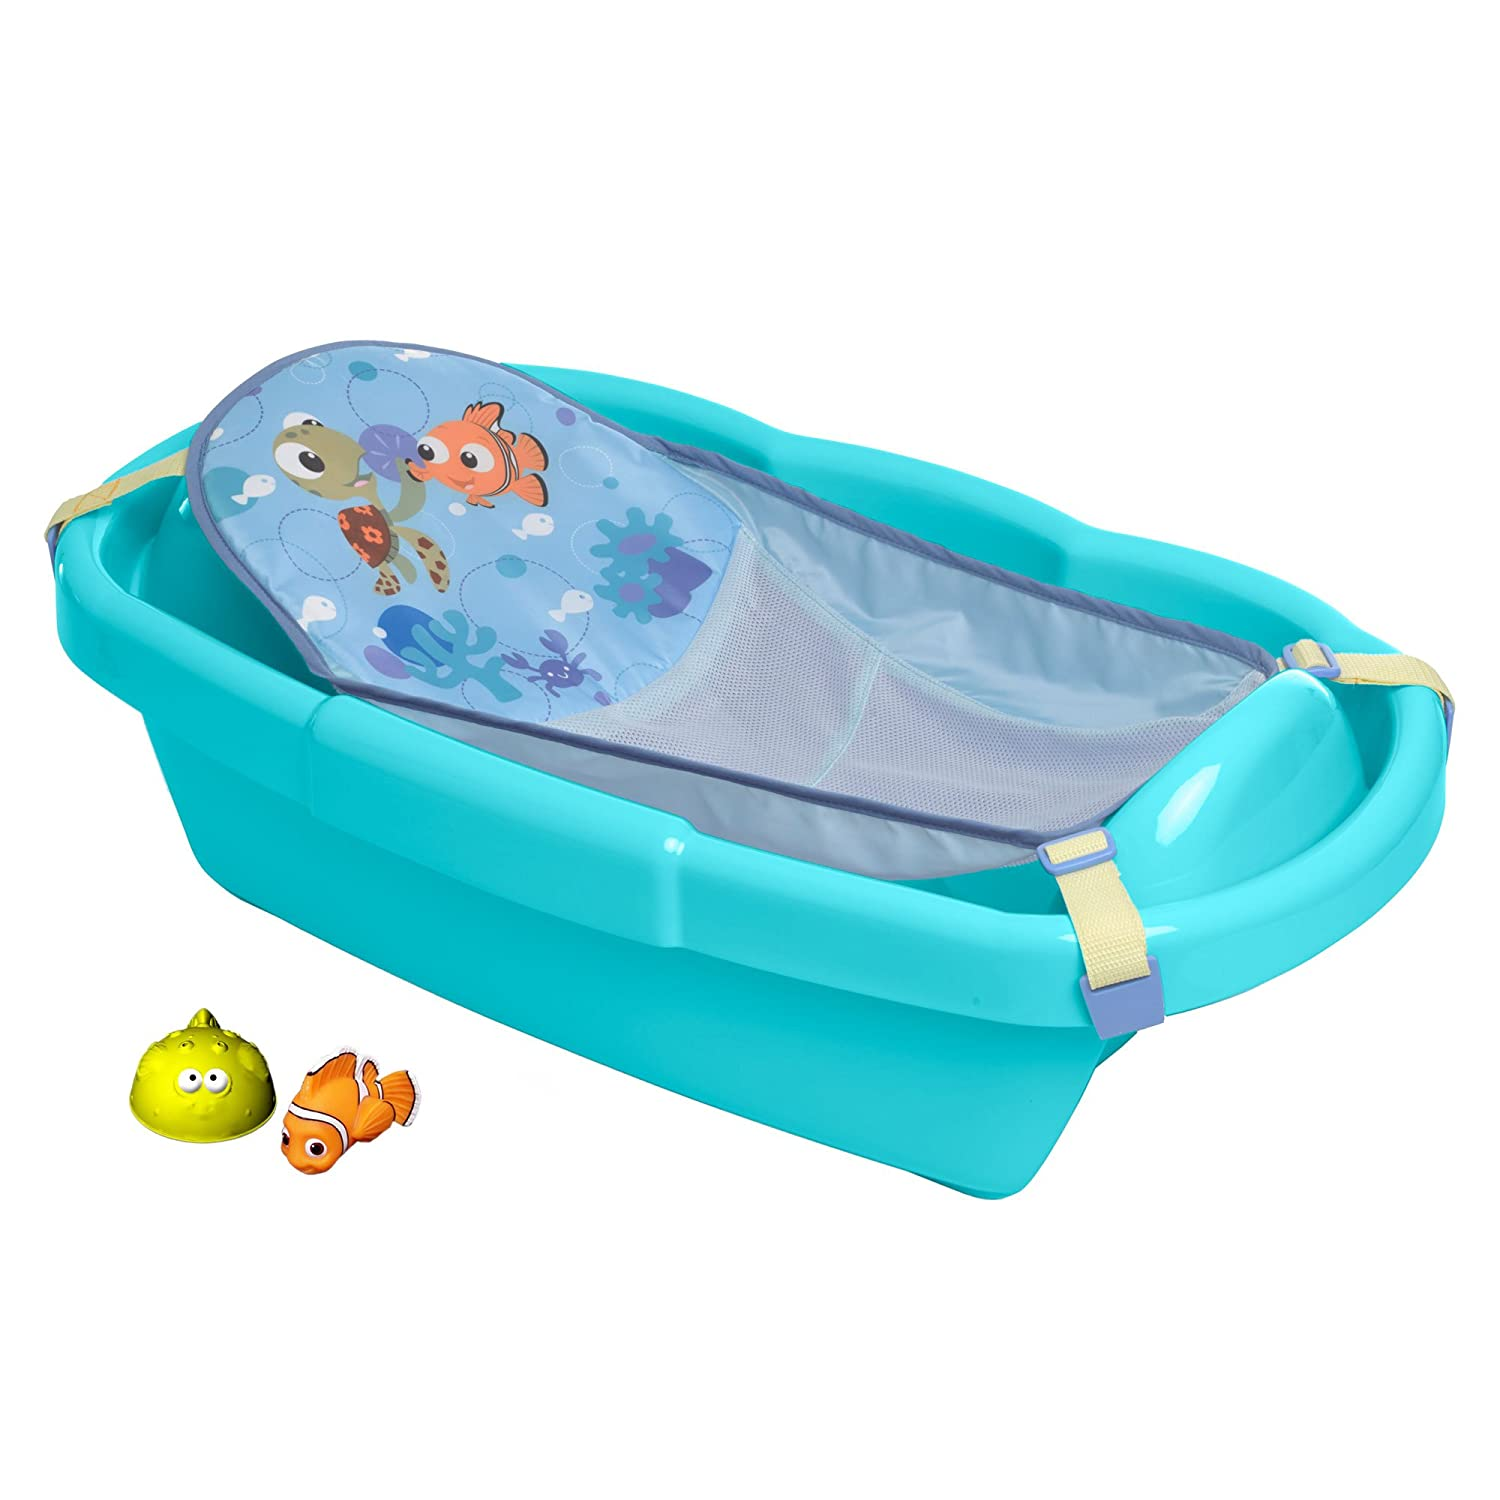 The First Years Disney Nemo Infant to Toddler Tub: Amazon.ca: Baby